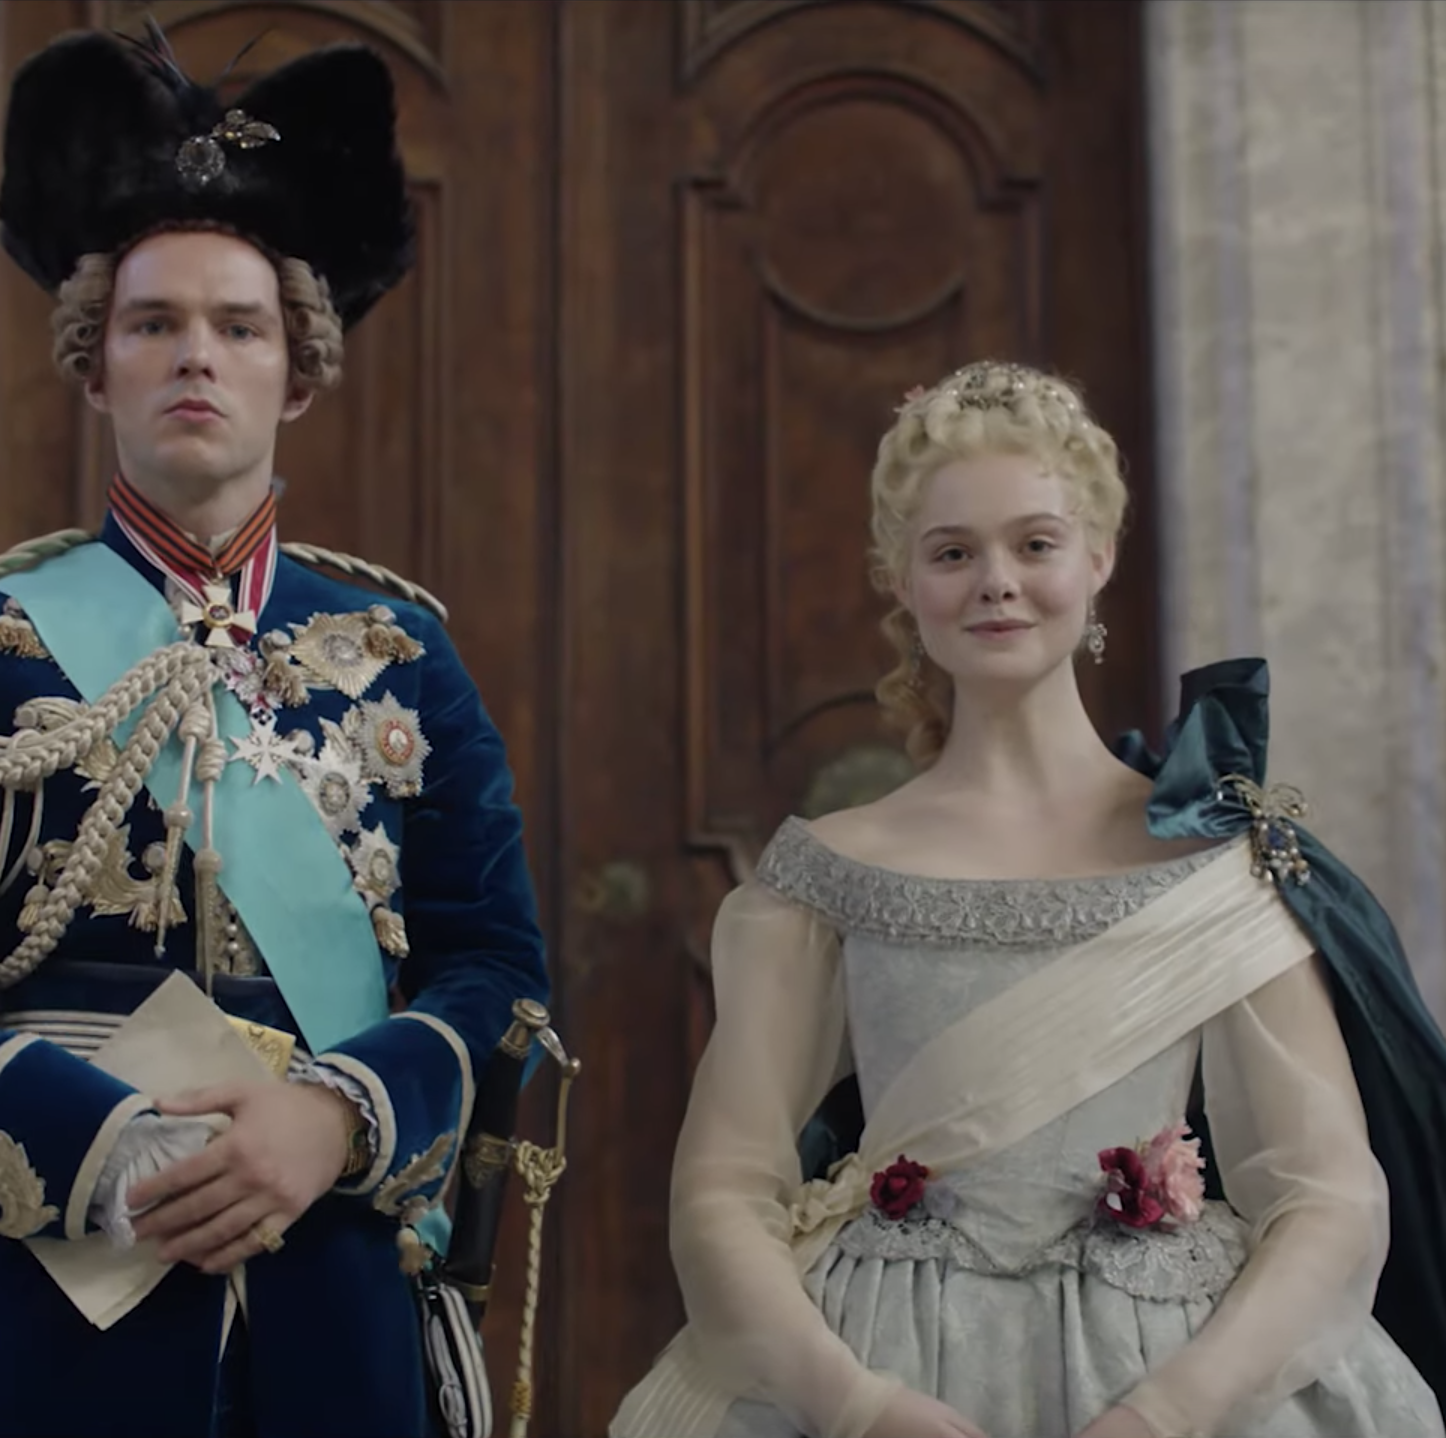 The Great Looks Like Your Next Royal Tv Obsession In 2020 Catherine The Great Greatful Costume Drama